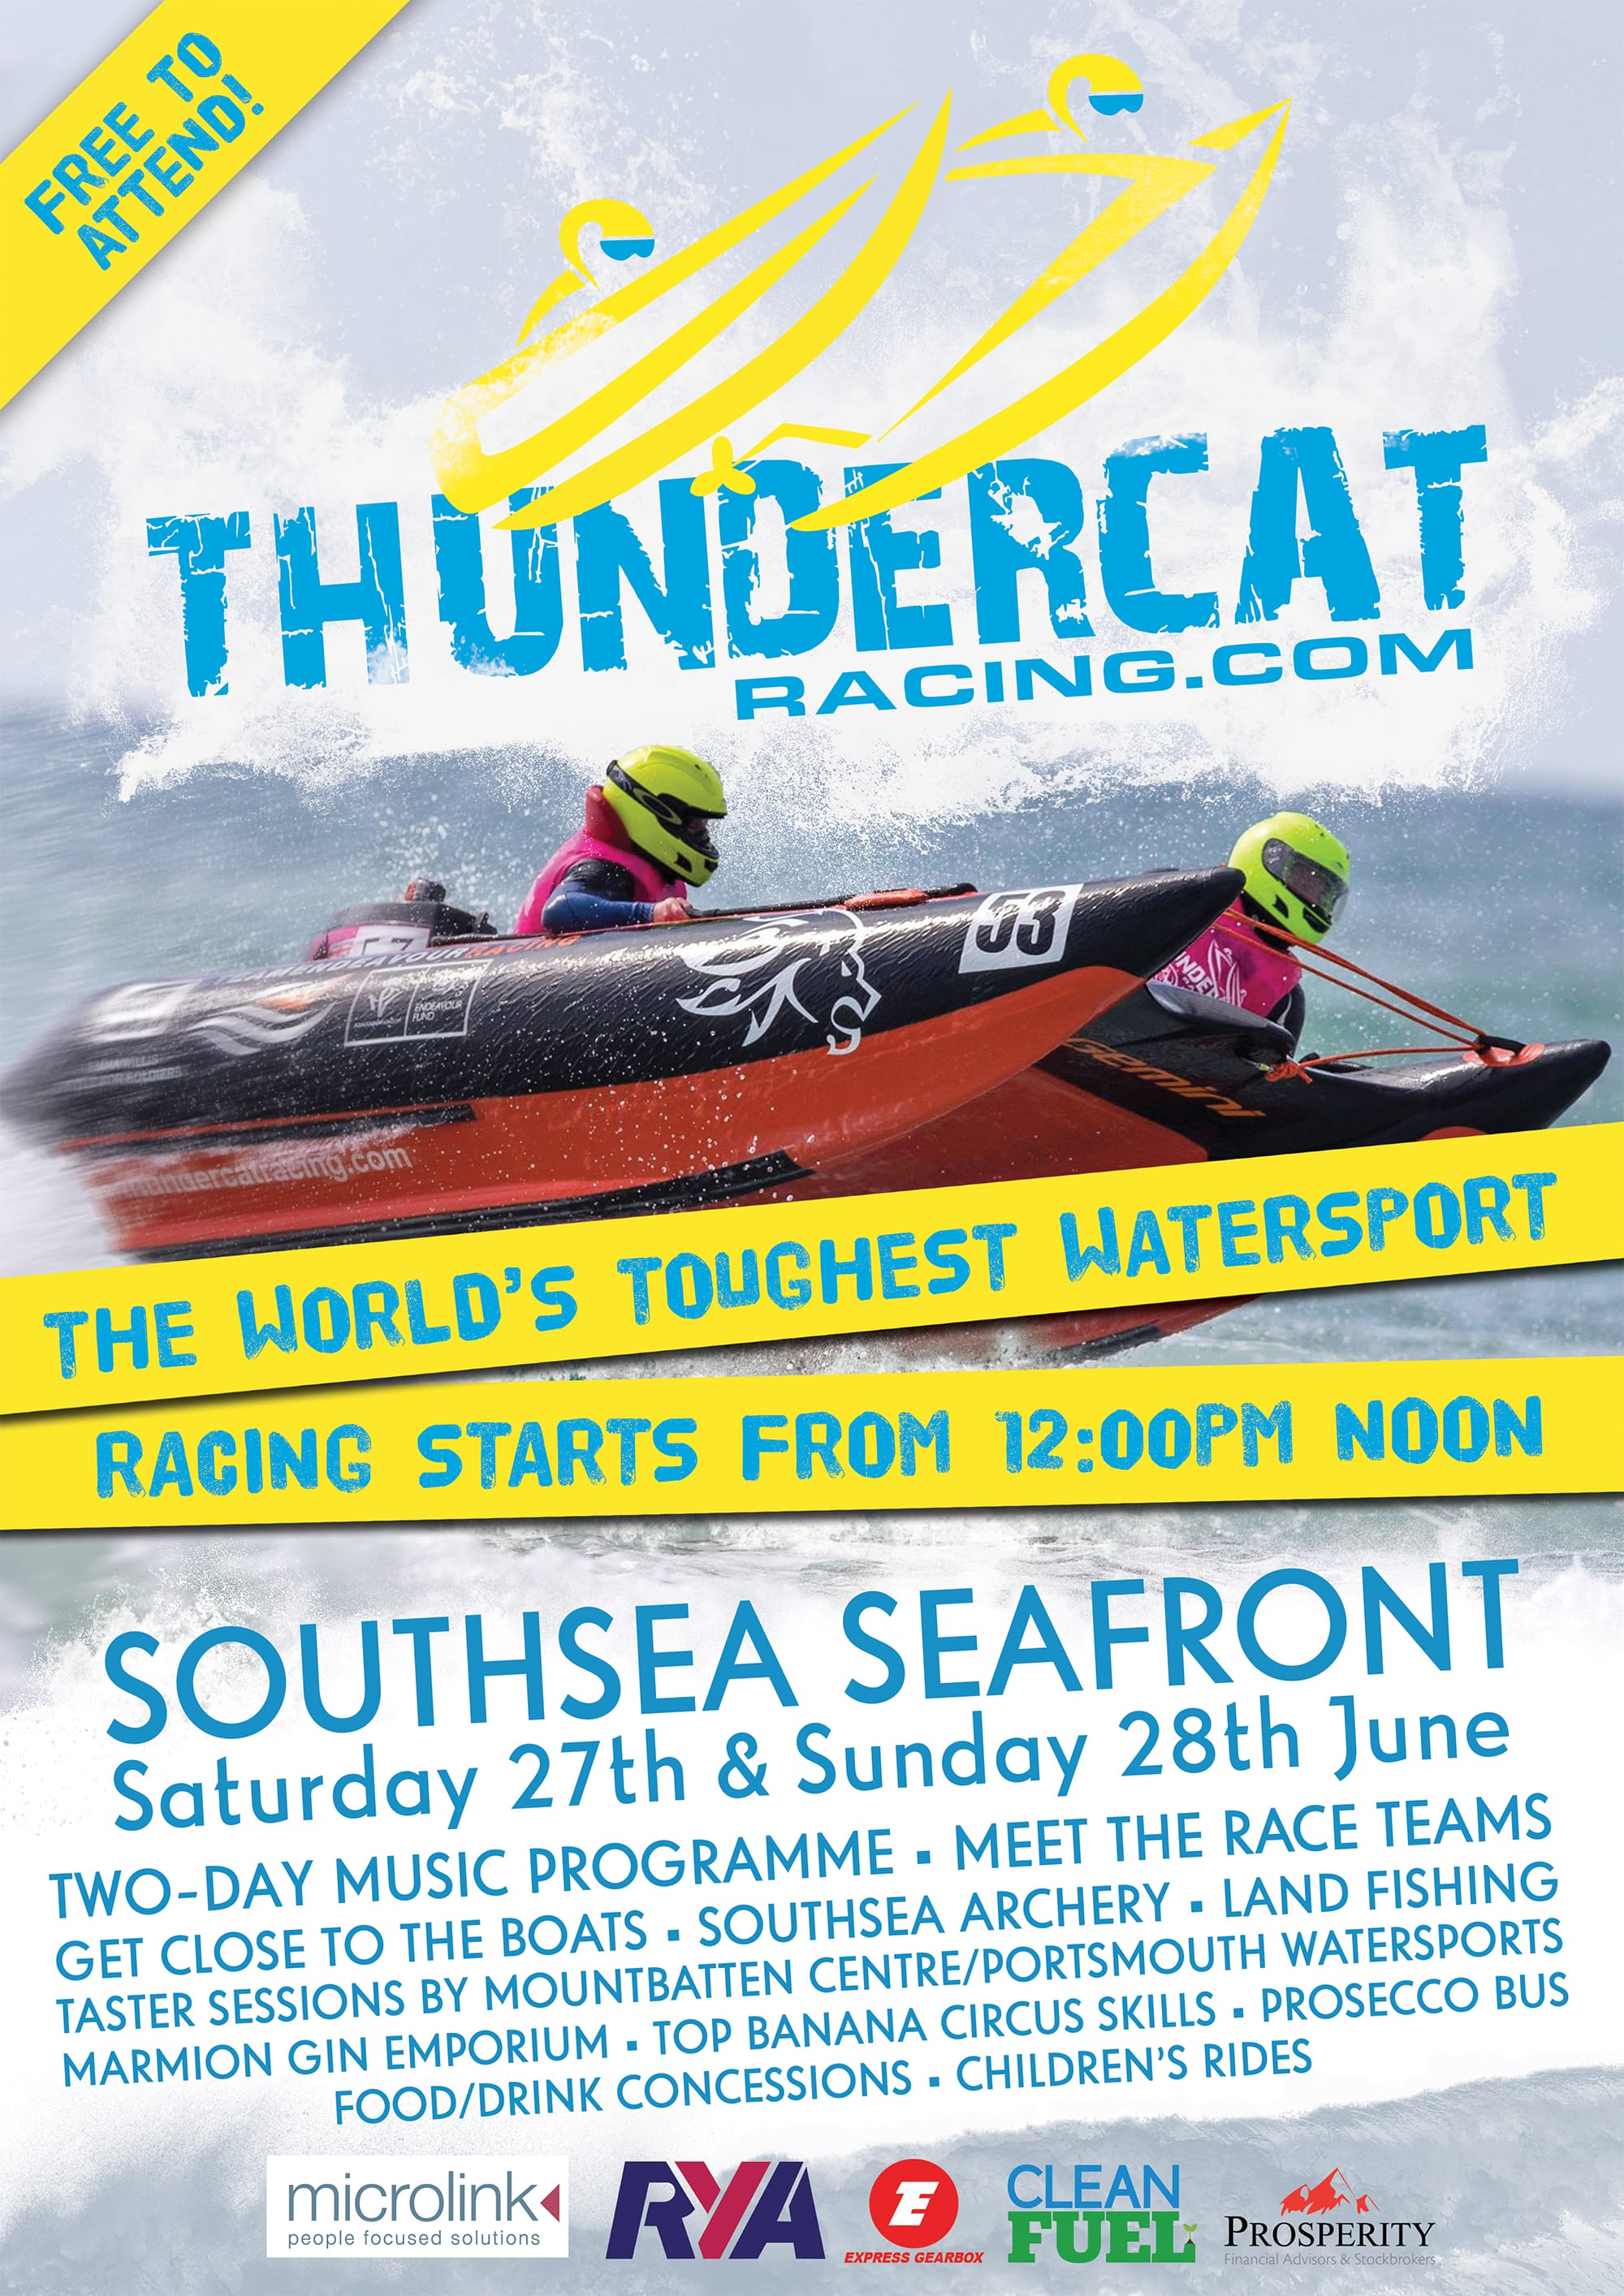 Thundercat Racing UK Poster 2015.jpg